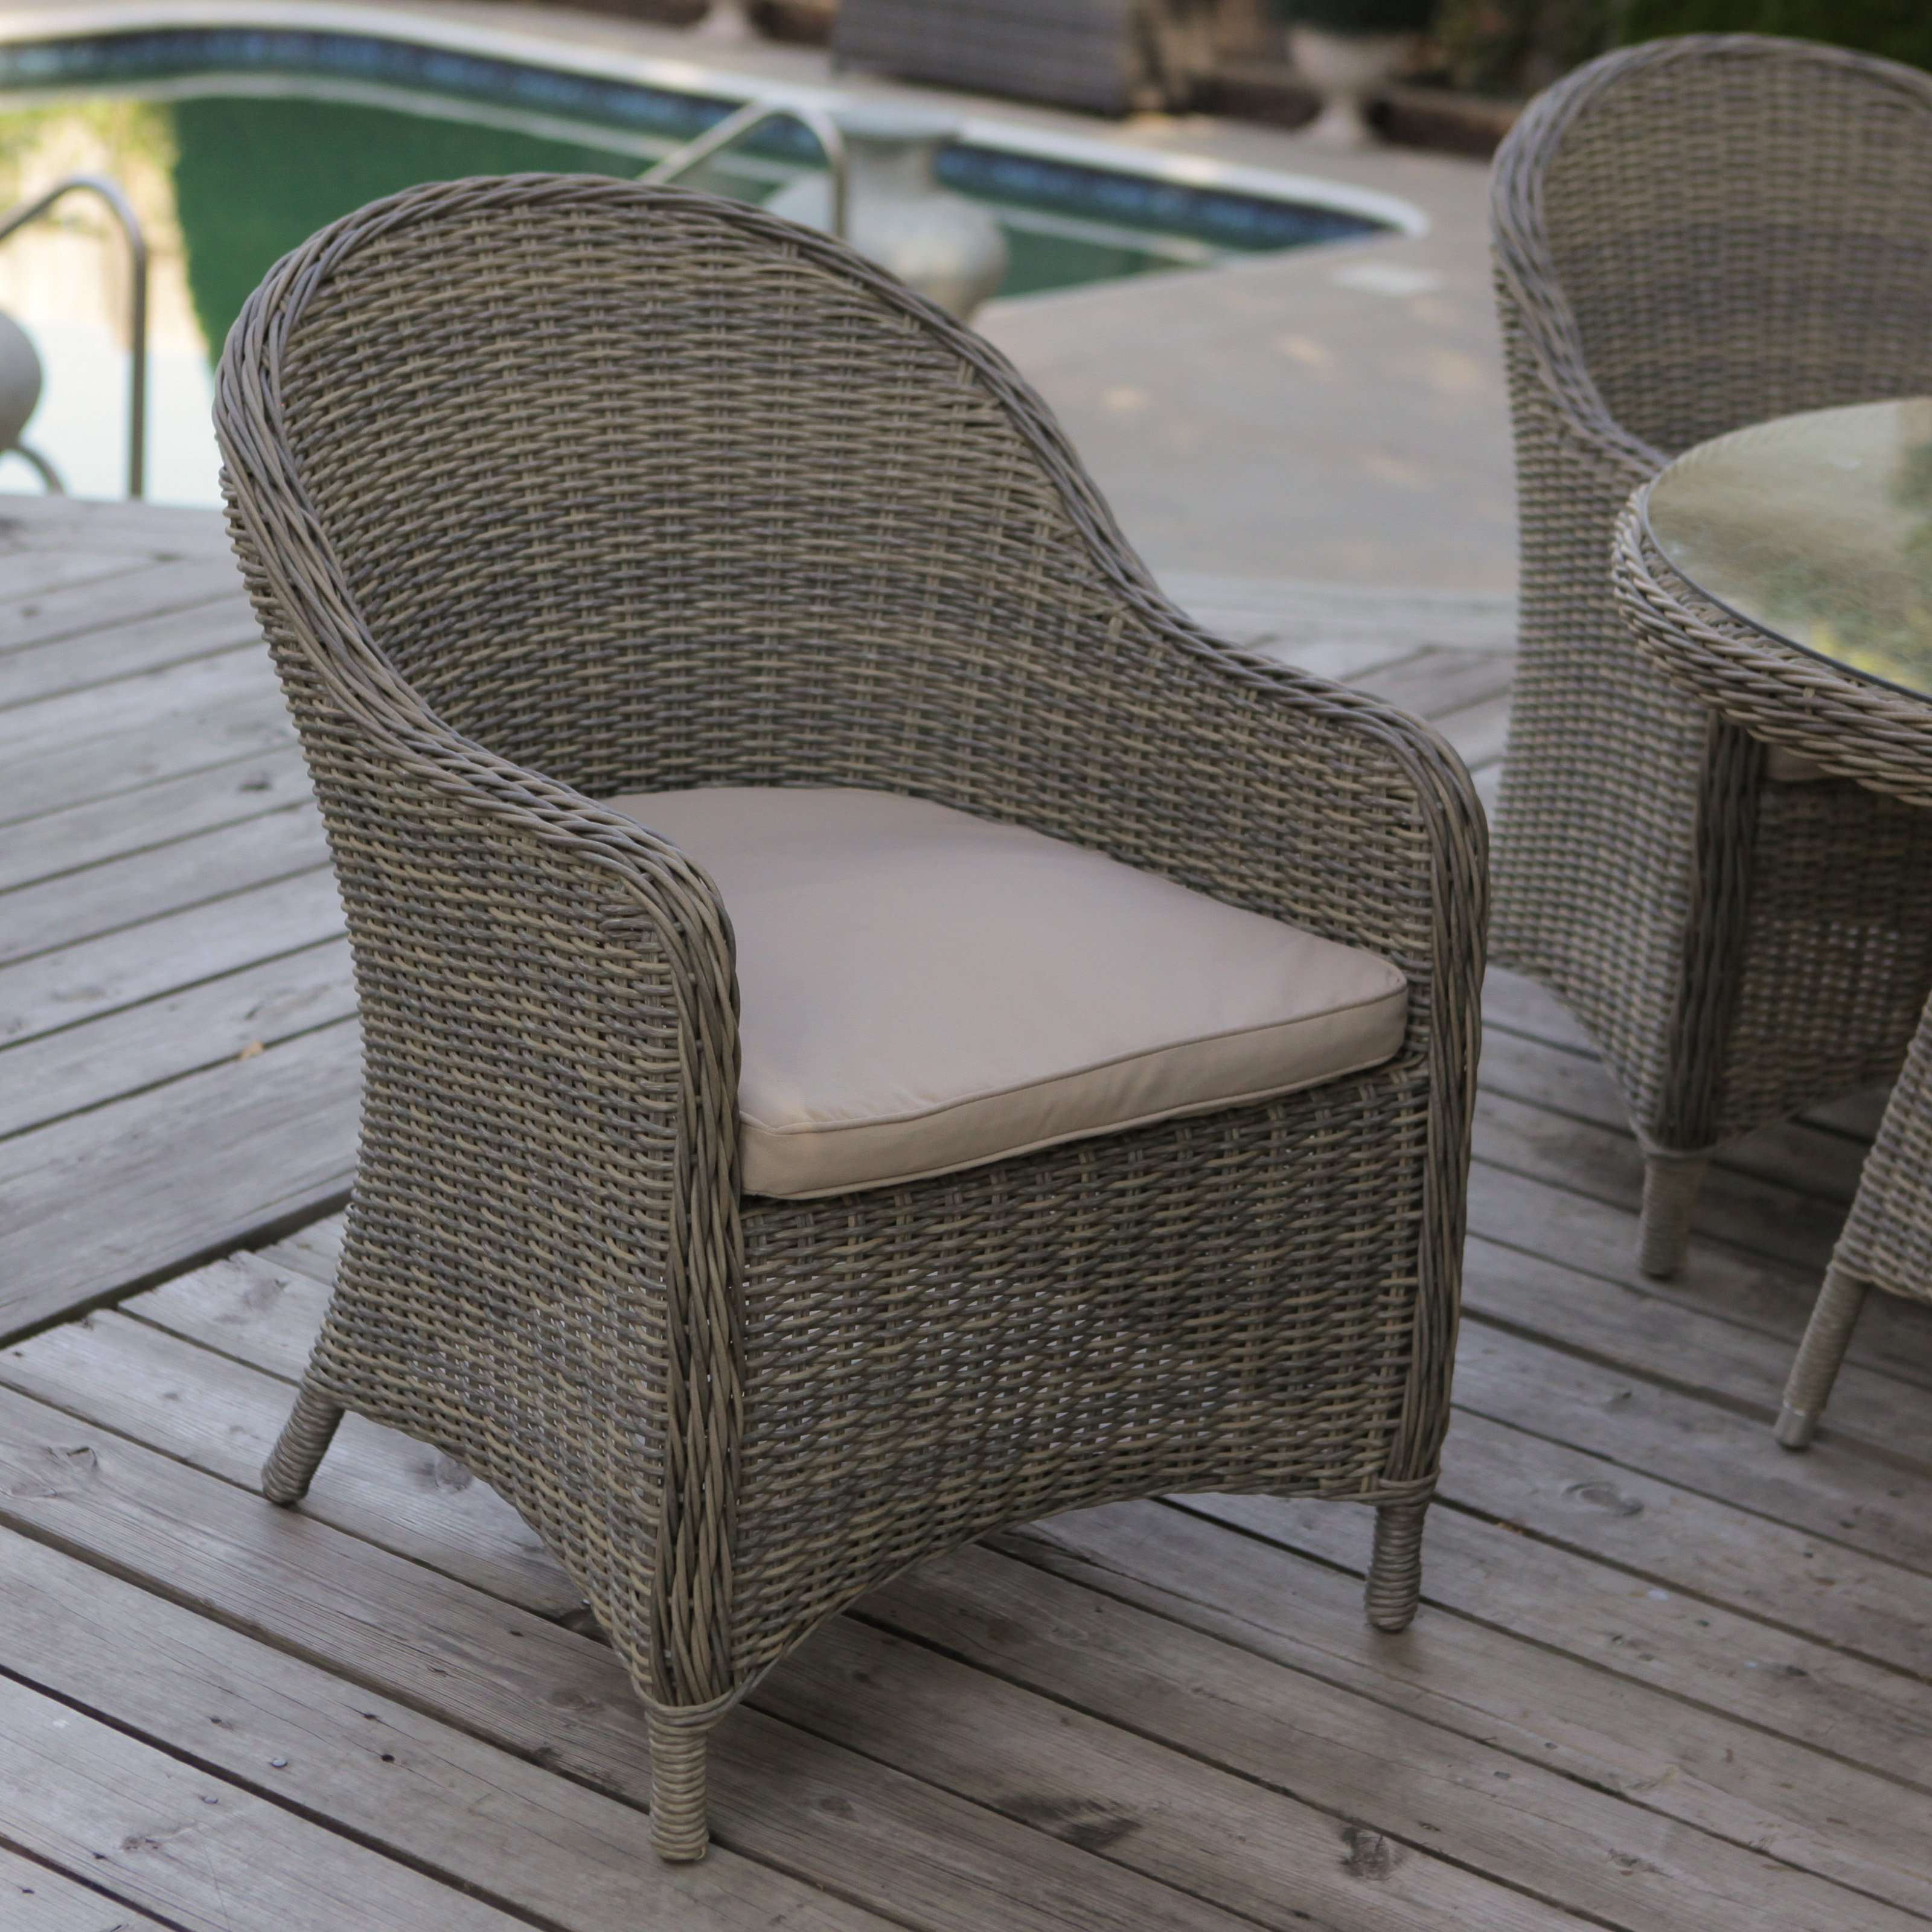 outdoor wicker furniture for children photo - 1